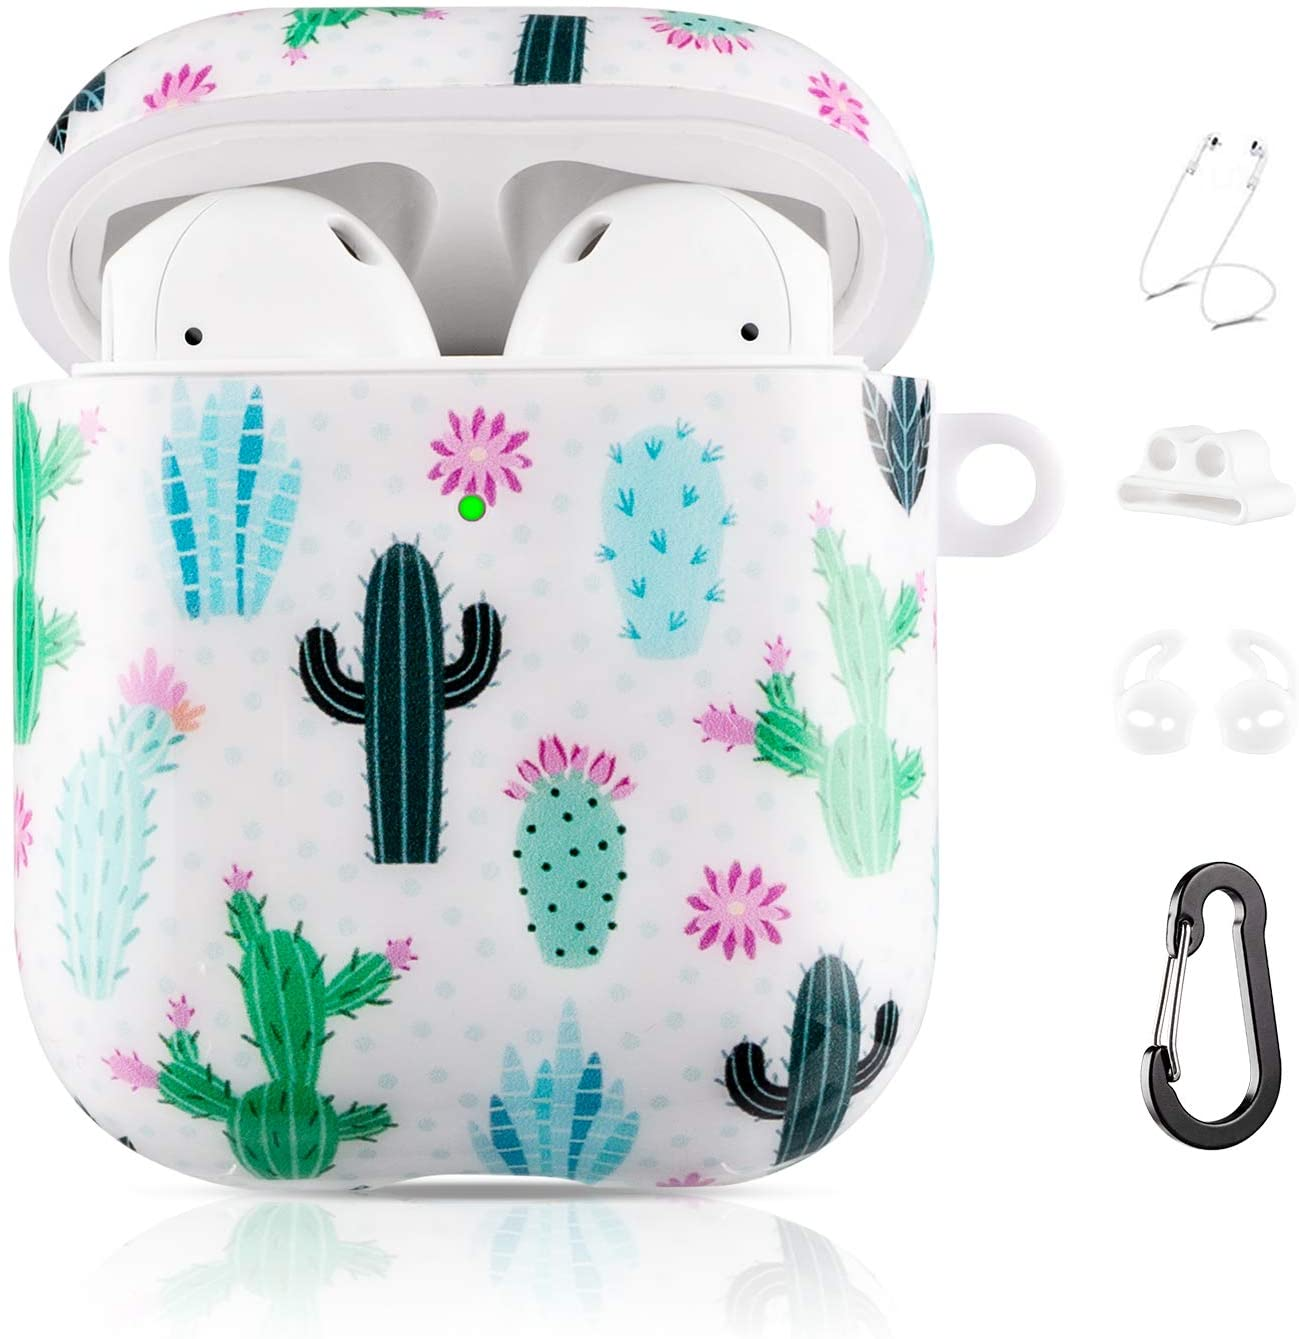 Drodalala Airpods Case Compatible with TPU Durable Protective Cover for Girls Boys Kids, Shockproof Drop Proof Case for AirPods 2 and 1 with Keychain(Polka dot Cactus)